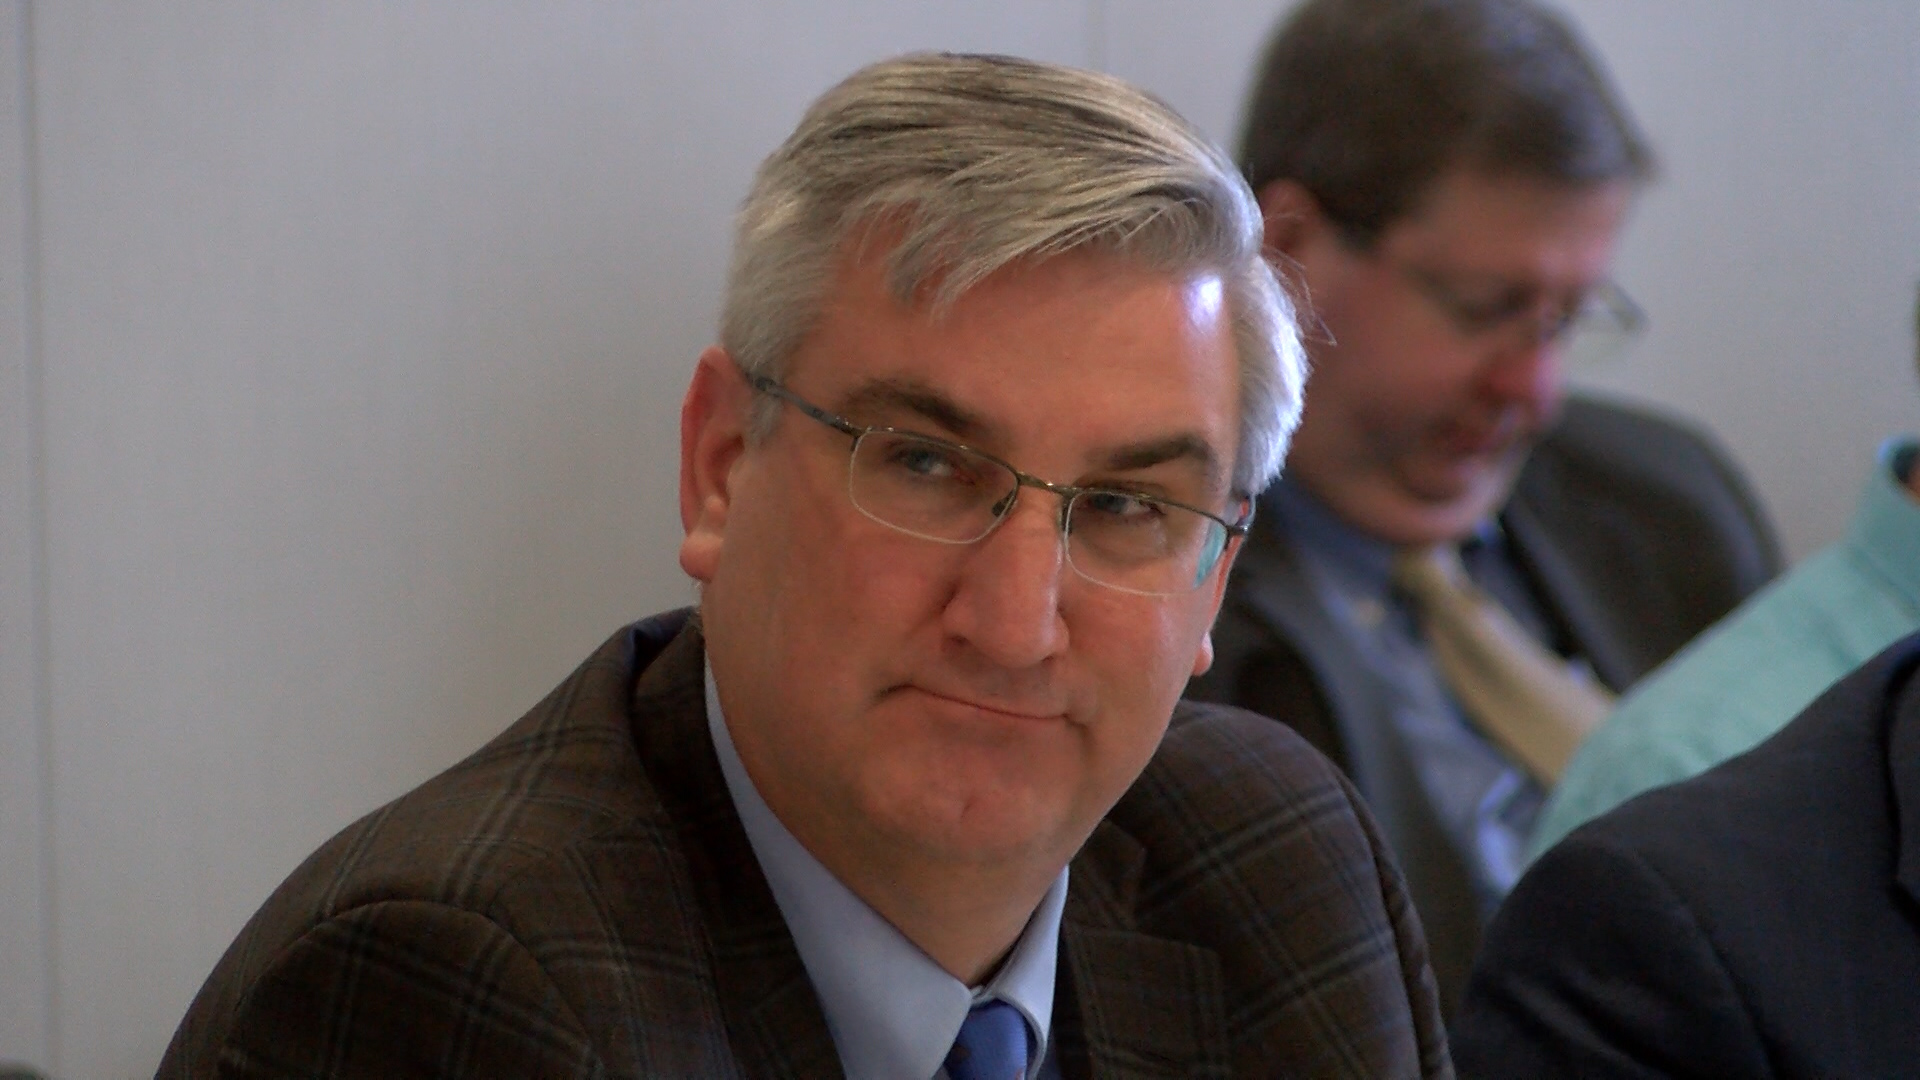 governor holcomb_1553293882630.jpg.jpg